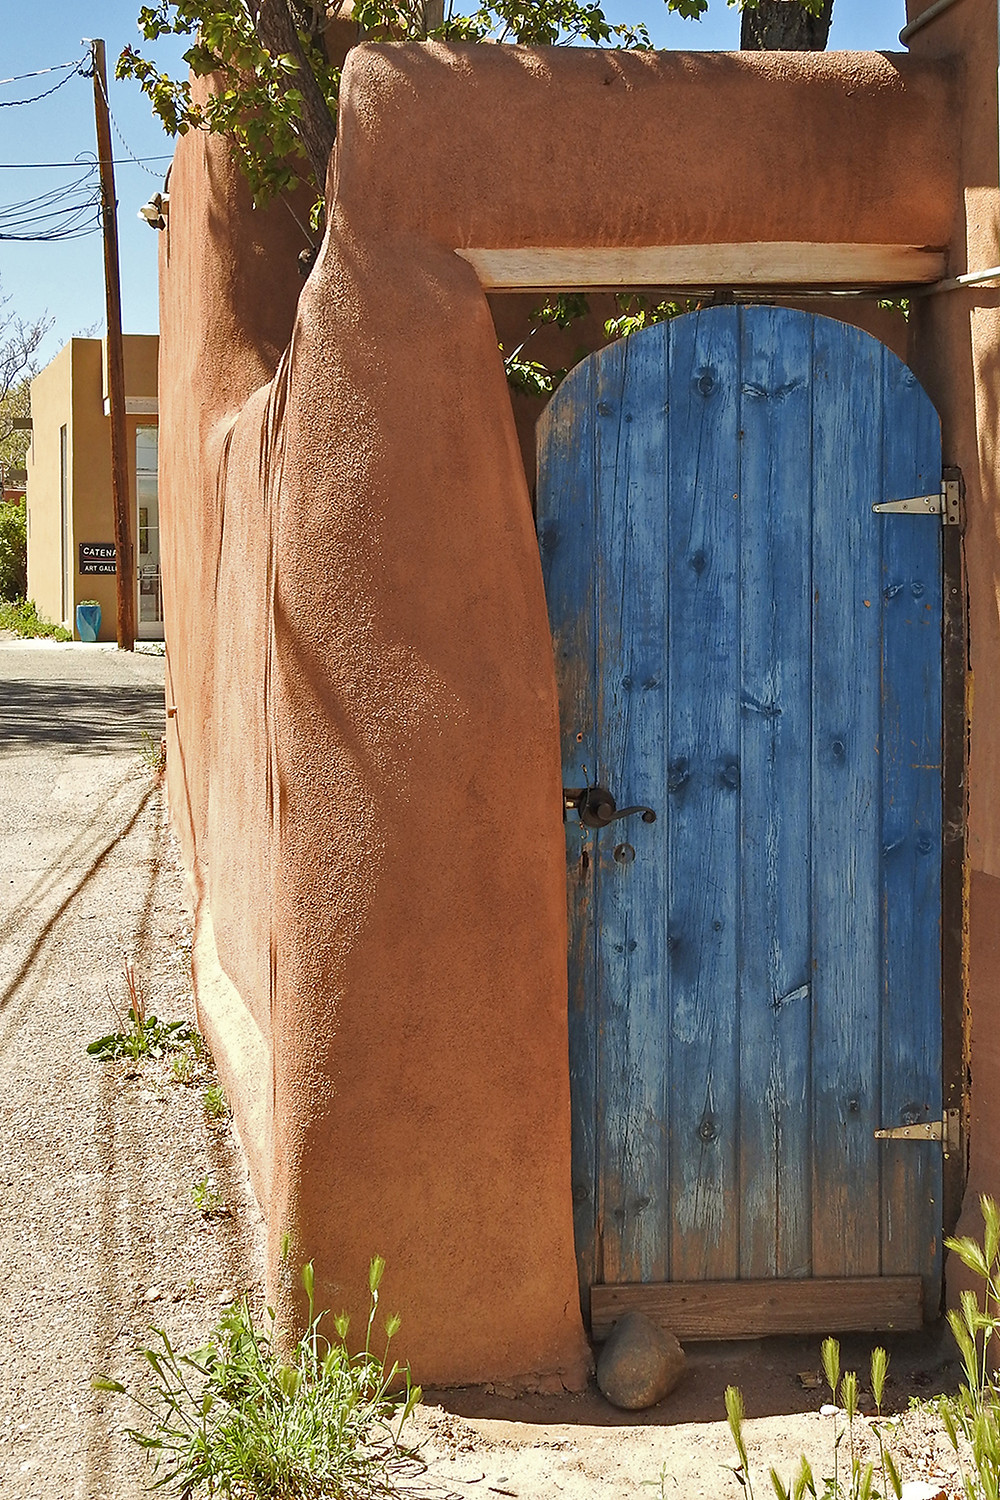 Weathered wooden gate painted blue in an adobe wall in Santa Fe, New Mexico